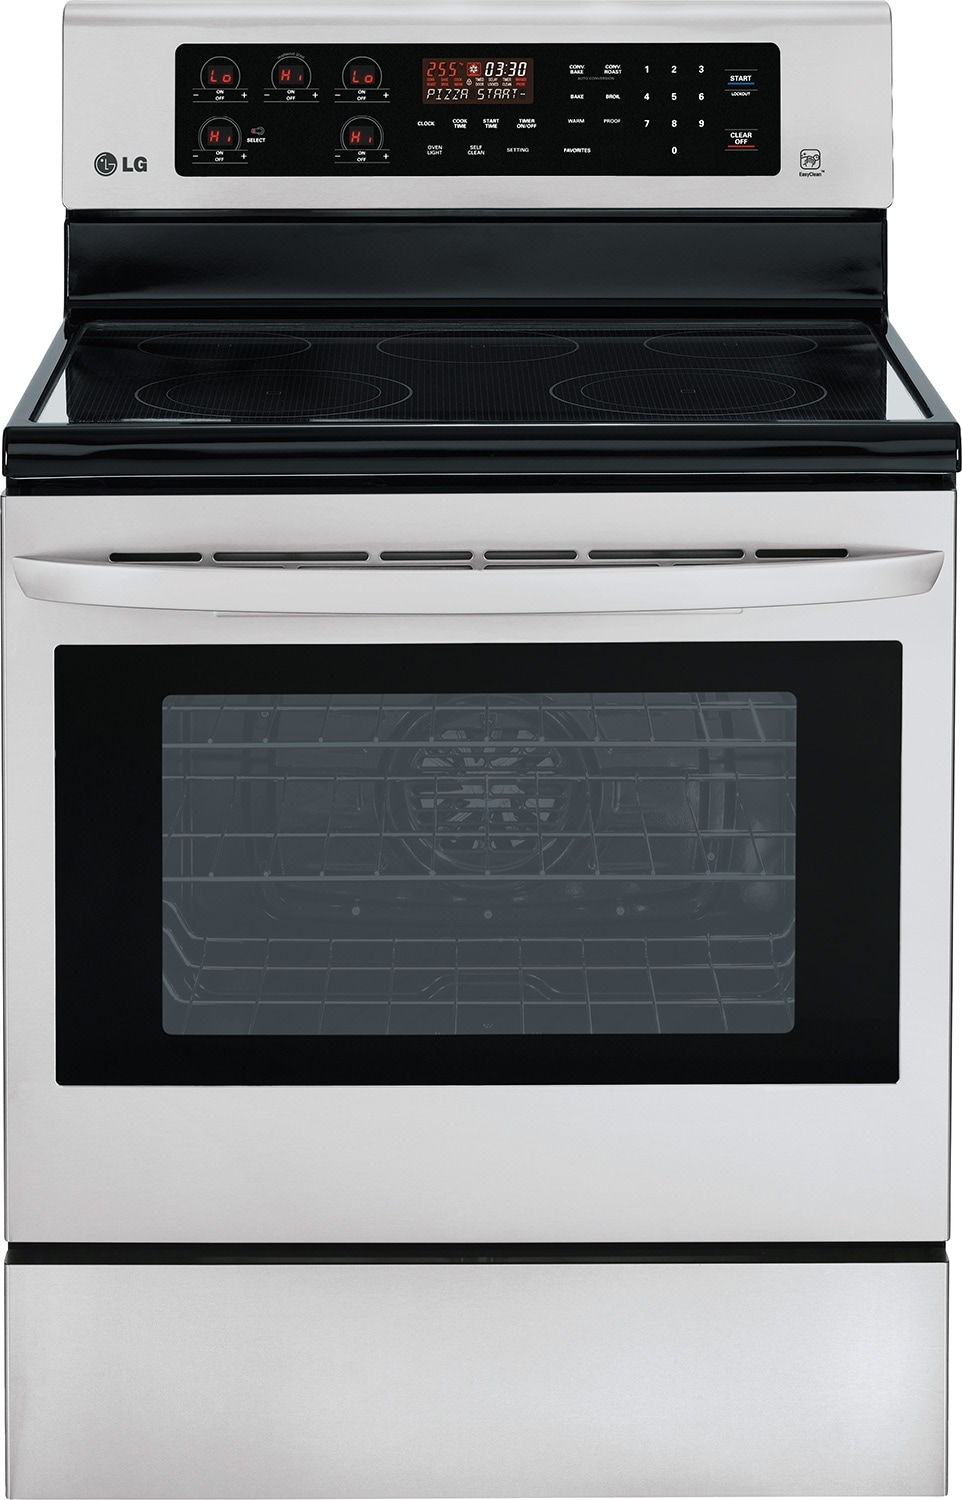 Cooking Products - LG 6.3 Cu. Ft. Freestanding Electric Convection Range - Stainless Steel